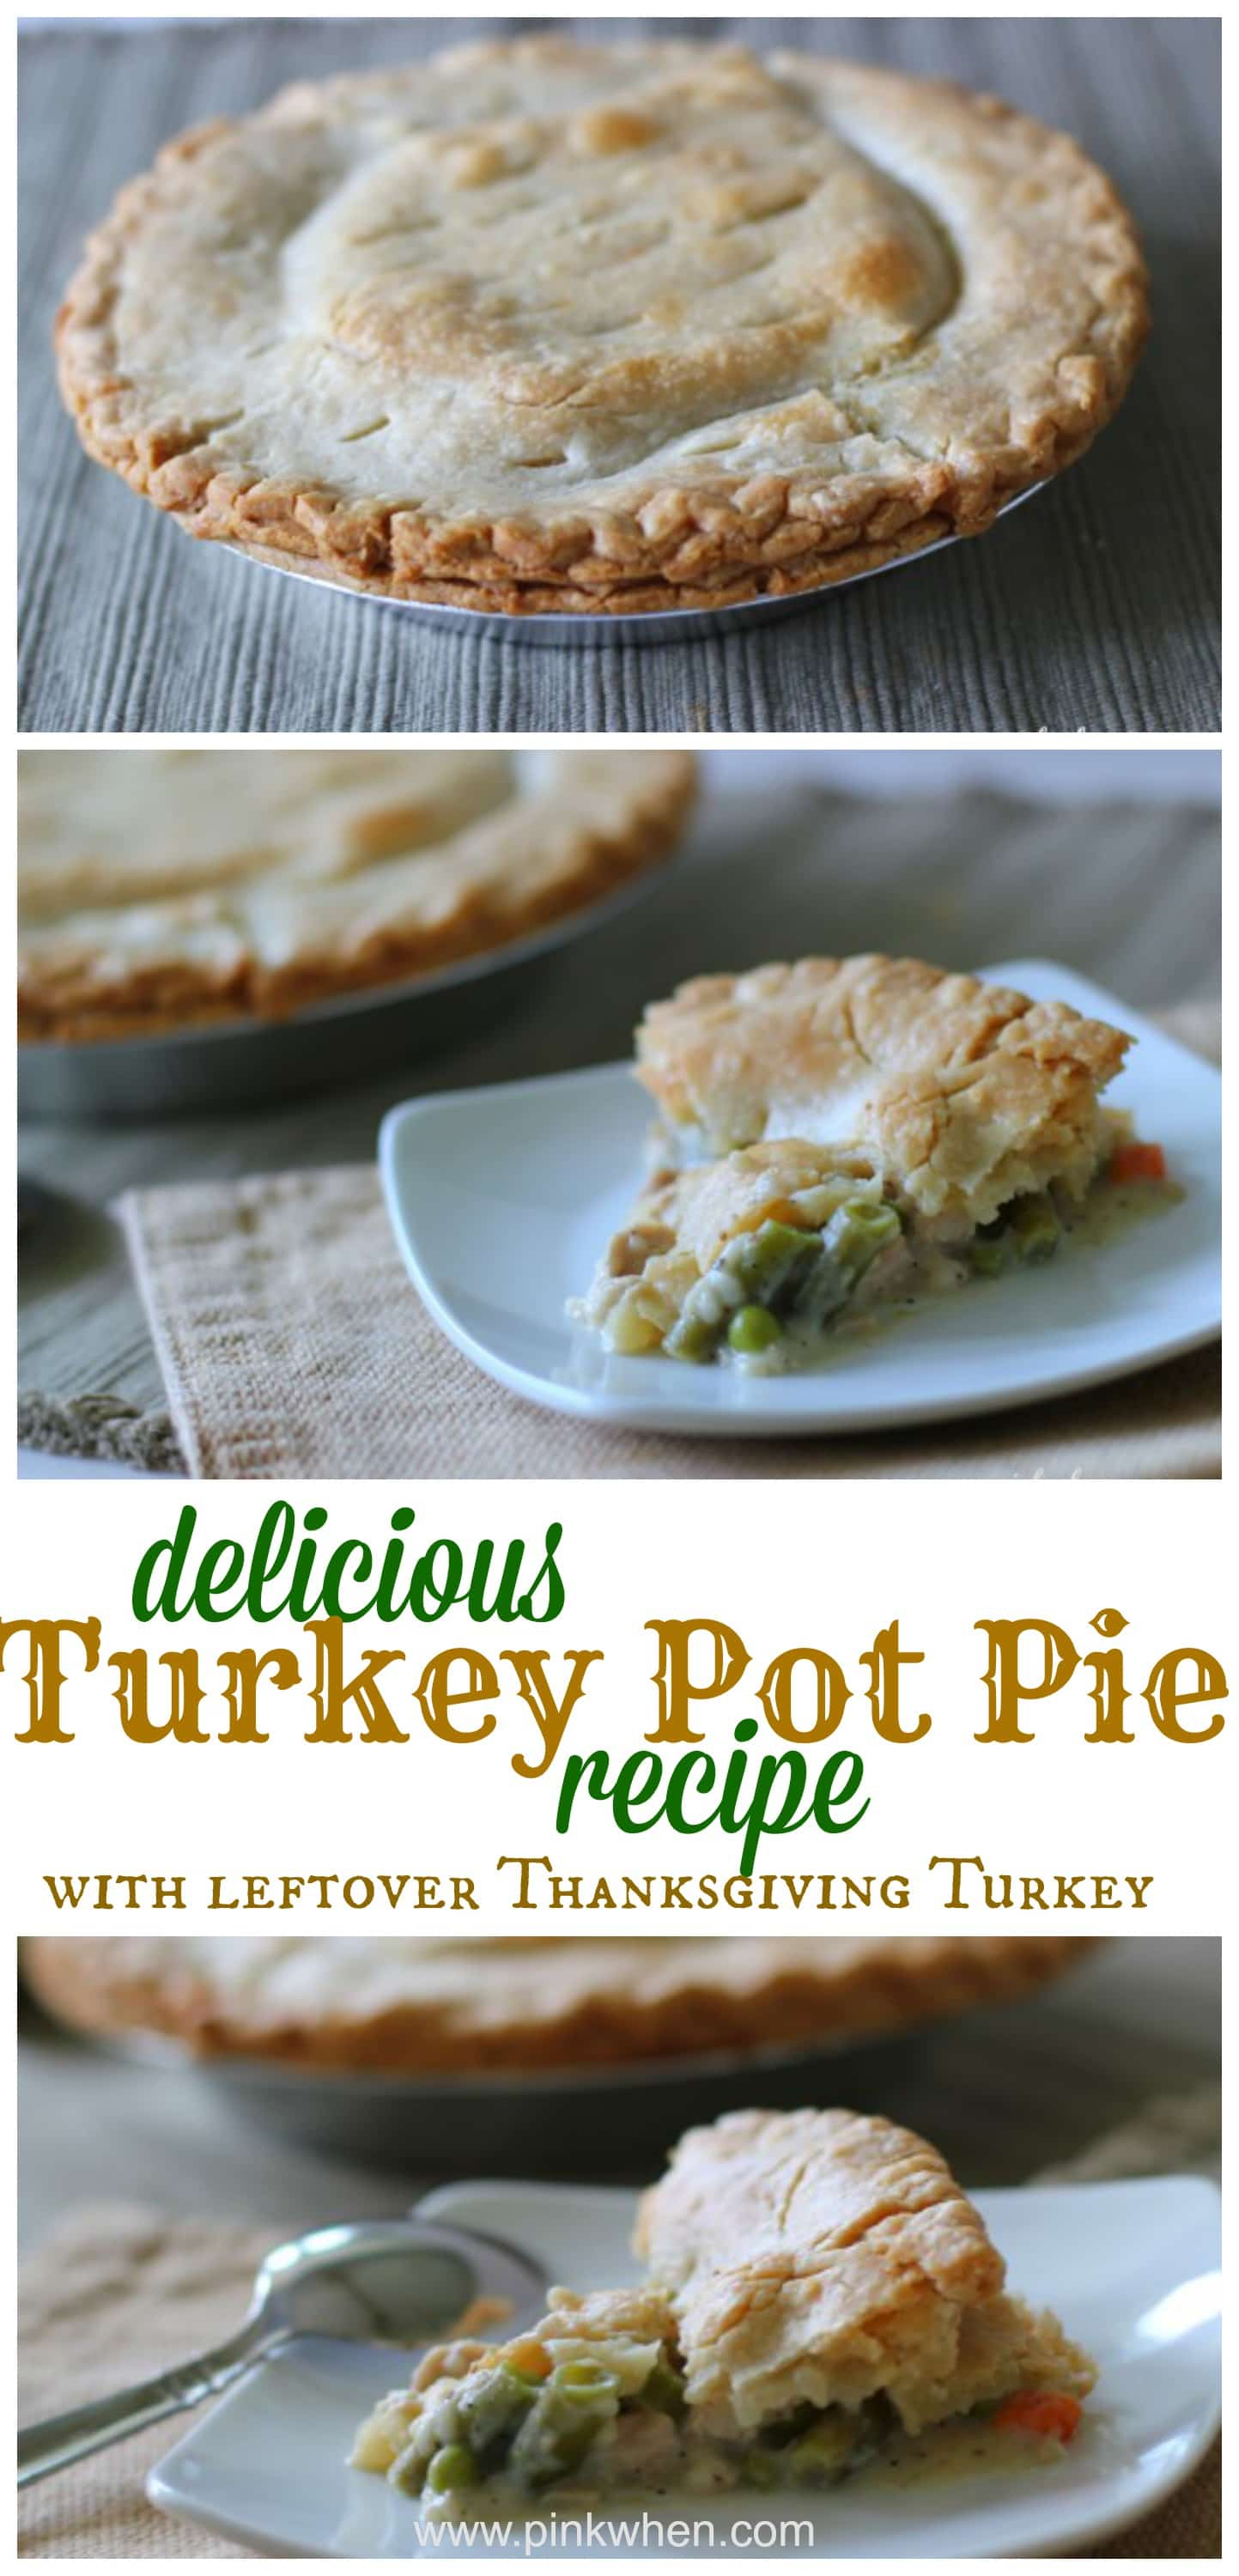 Delicious Turkey Pot Pie Recipe with Leftover Thanksgiving Turkey via PinkWhen.com